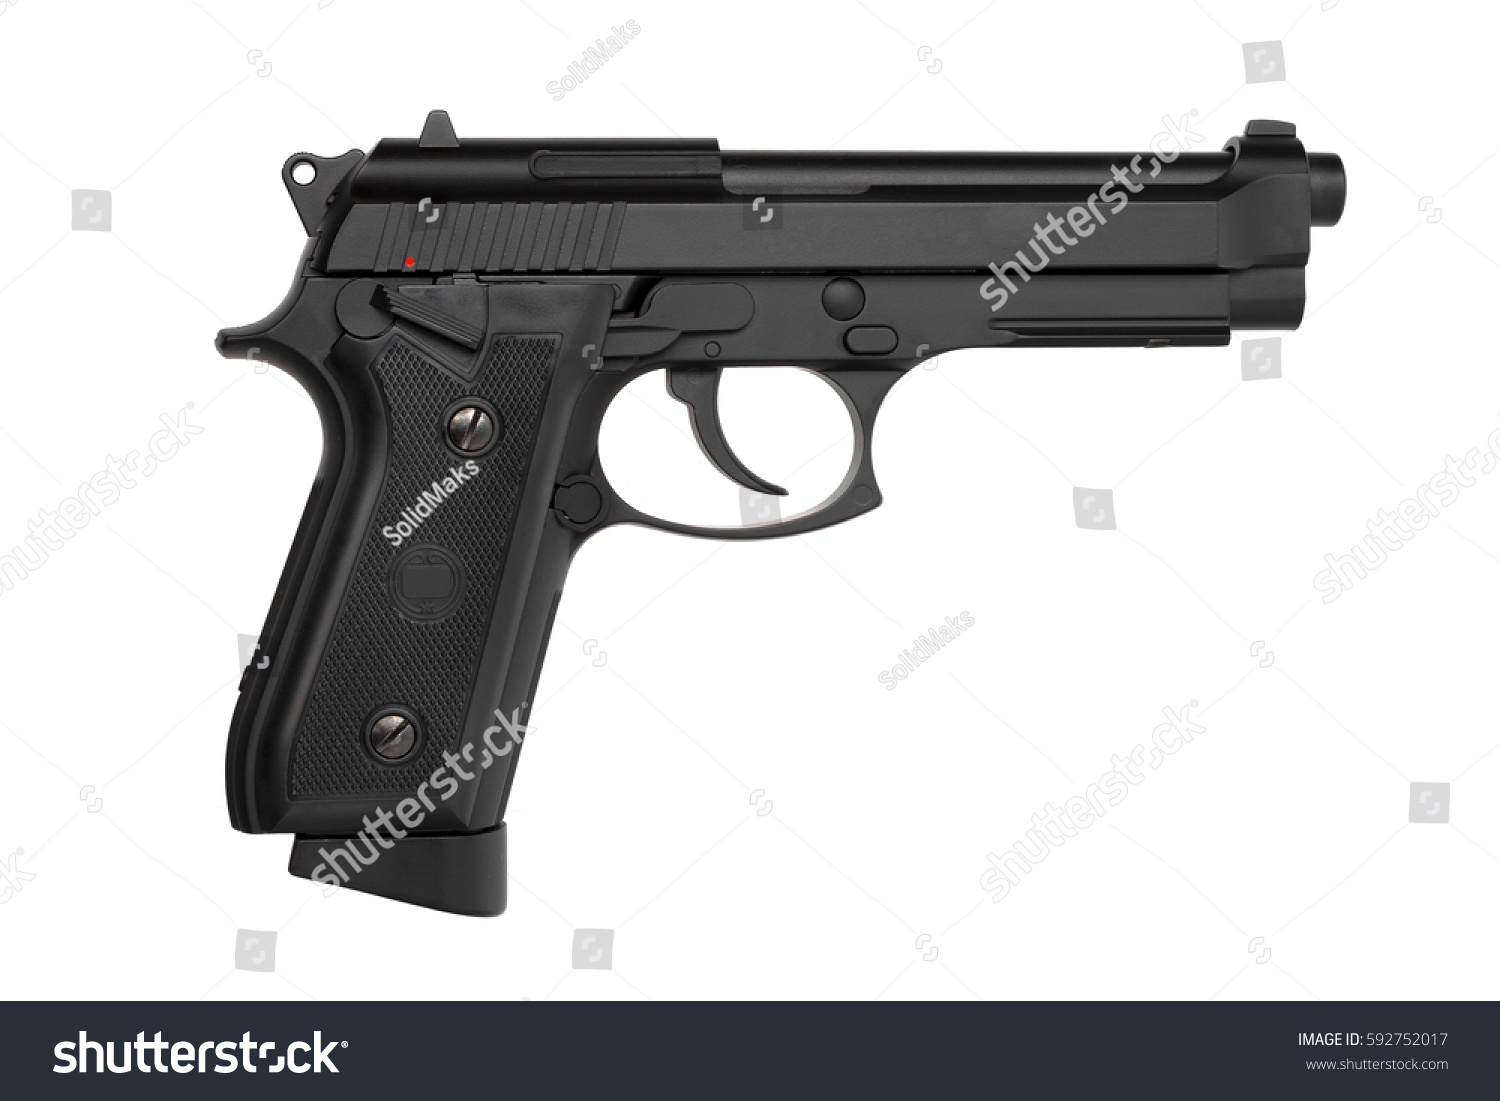 gun white background - photo #18